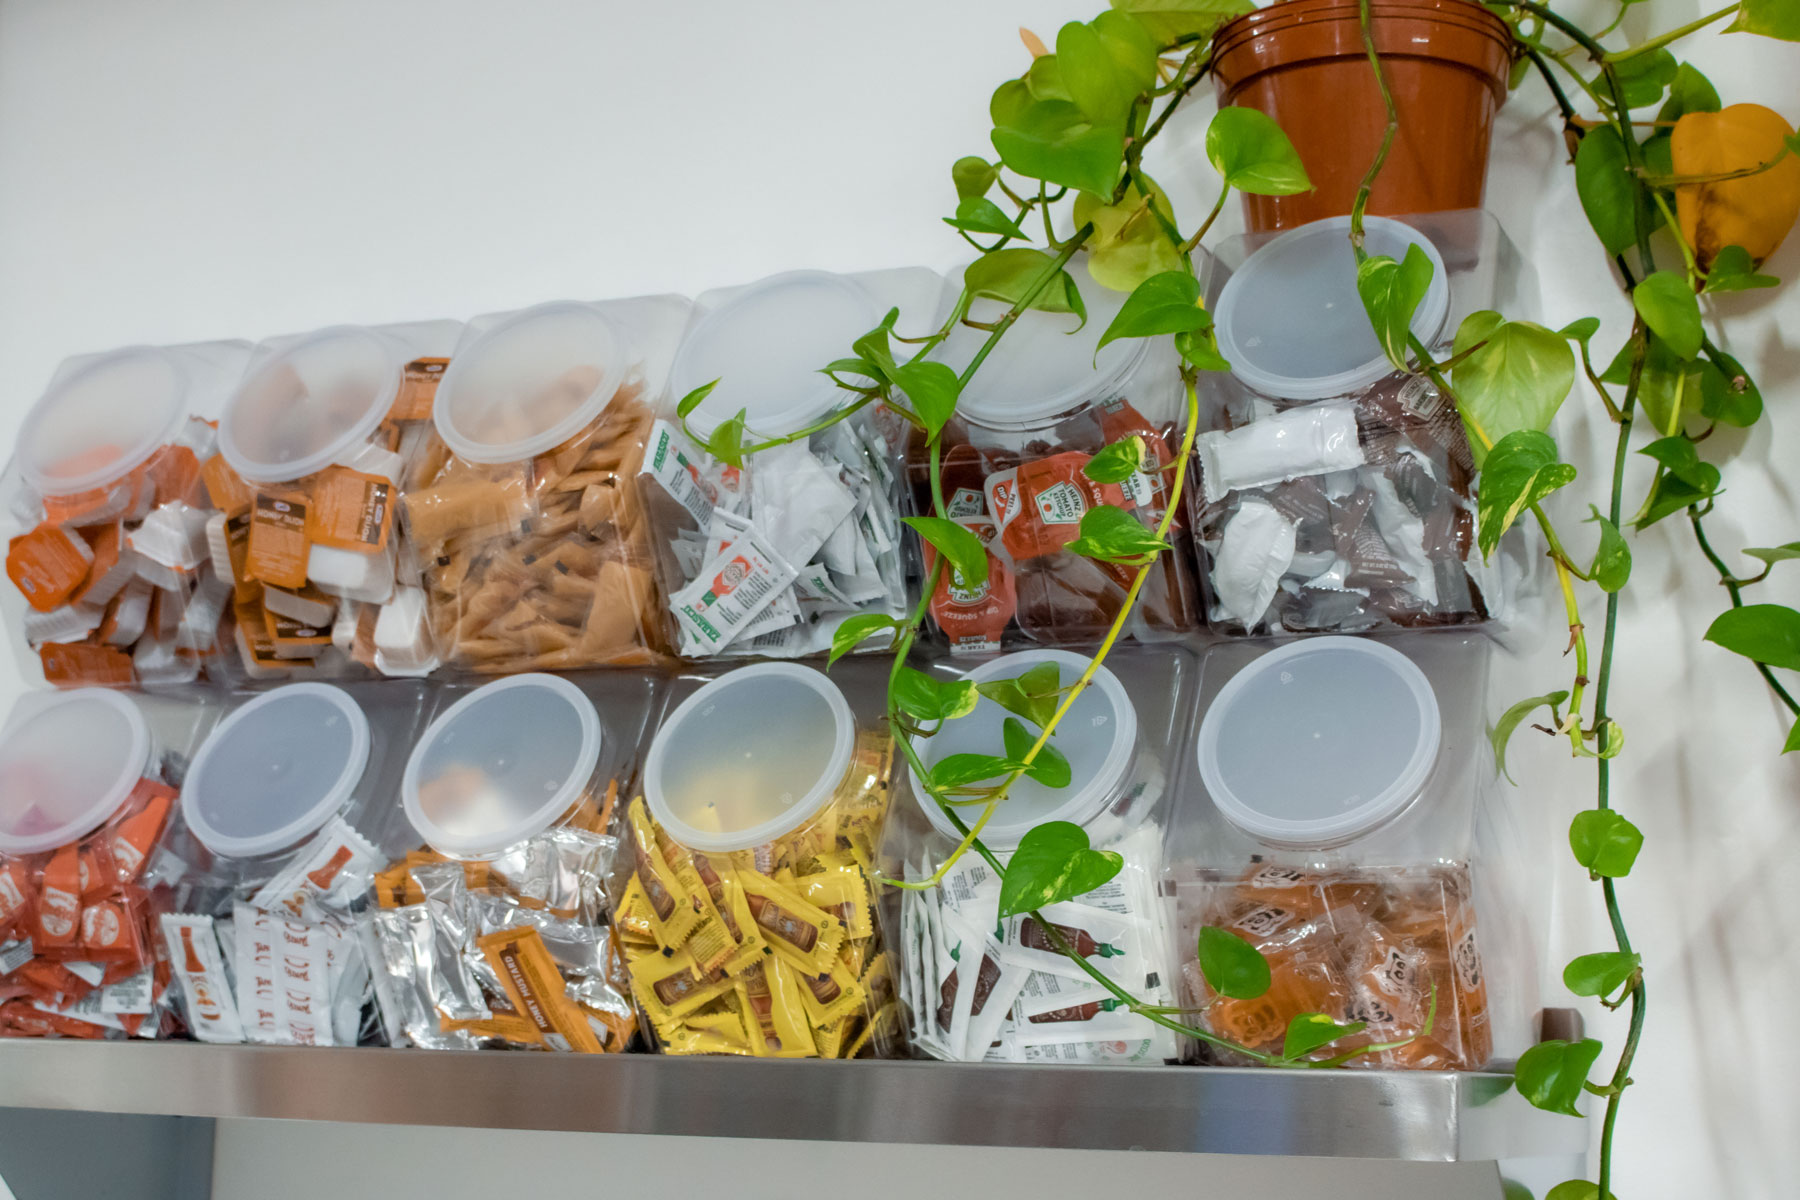 Individual storage containers filled with a variety of sauce packets and containers.